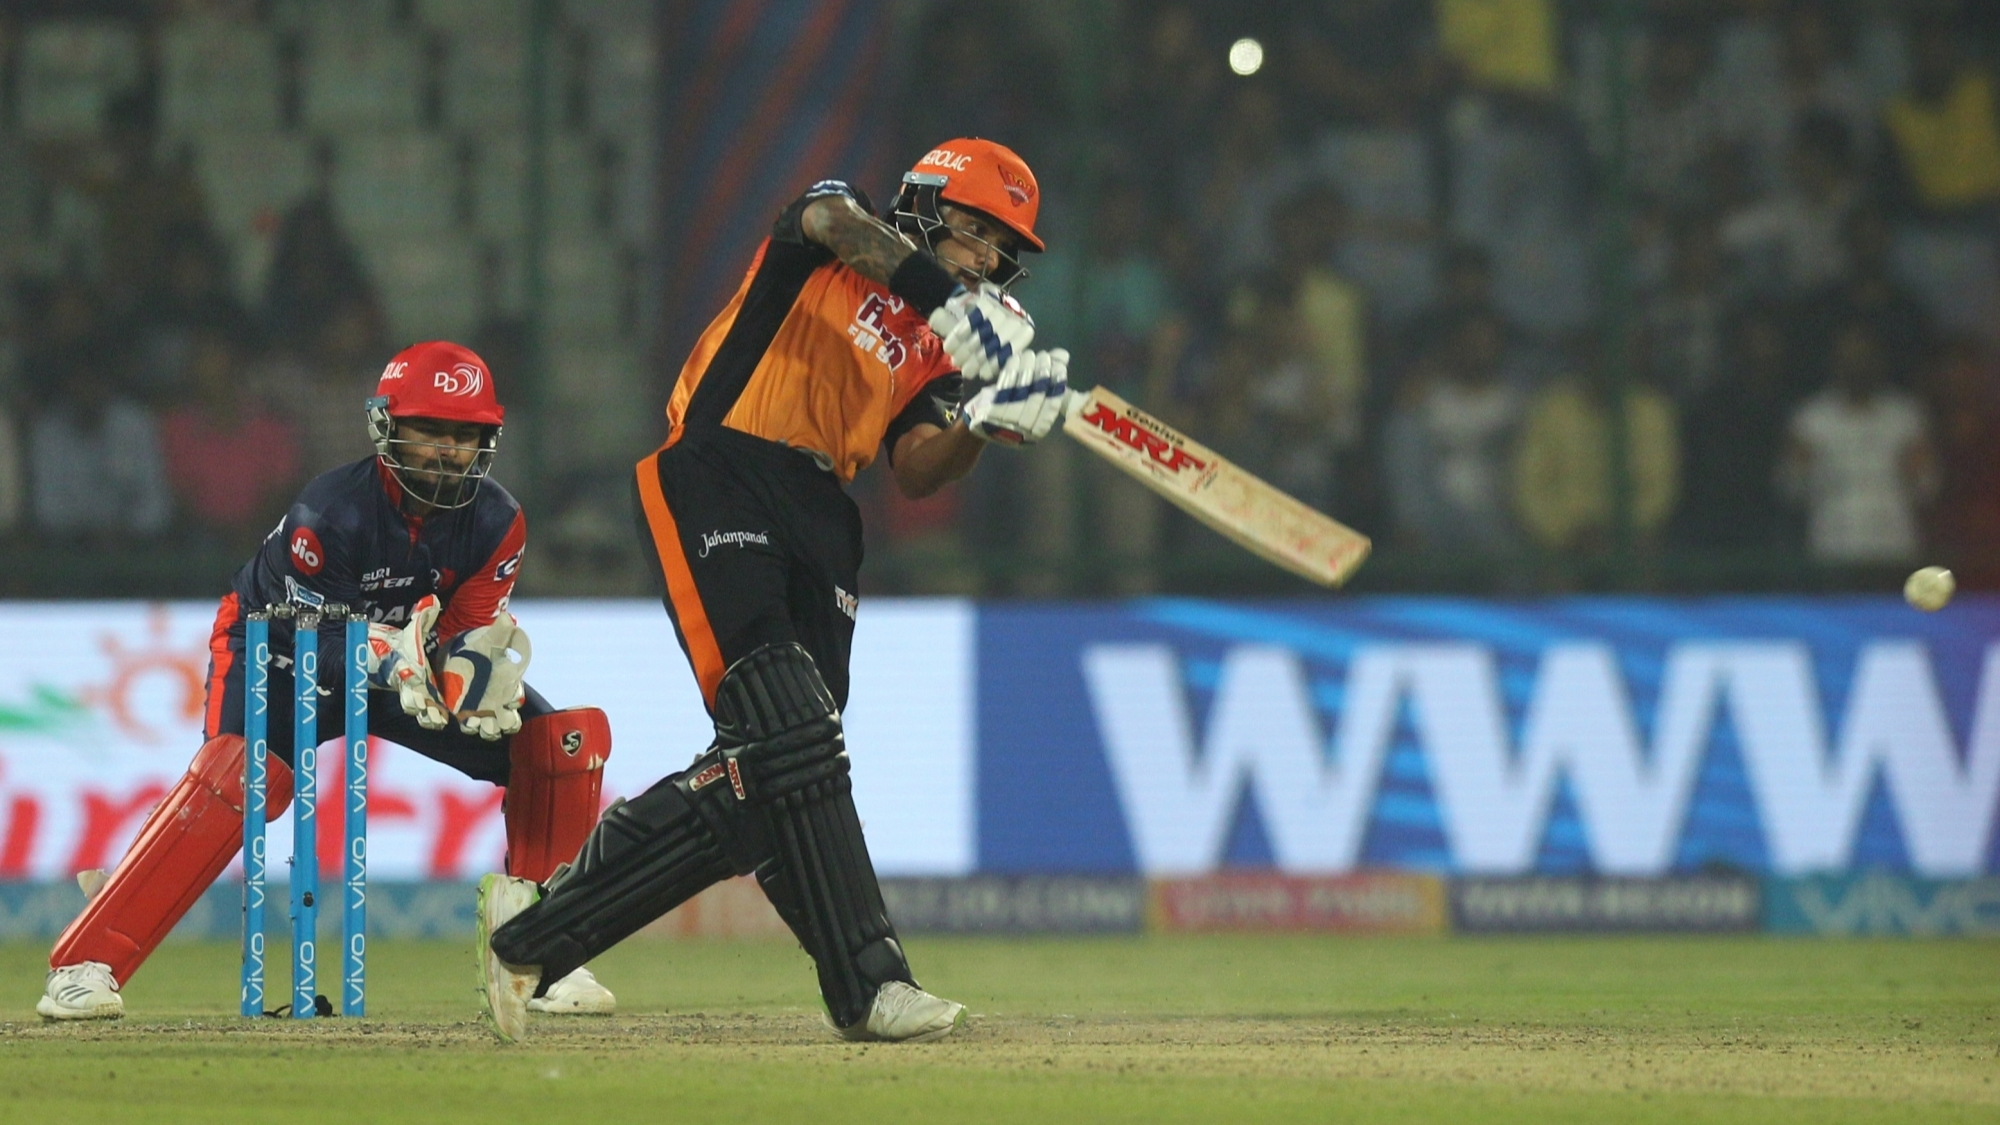 IPL 2018: 'The Gabbar was always there' says Shikhar Dhawan after his scintillating 92* against DD